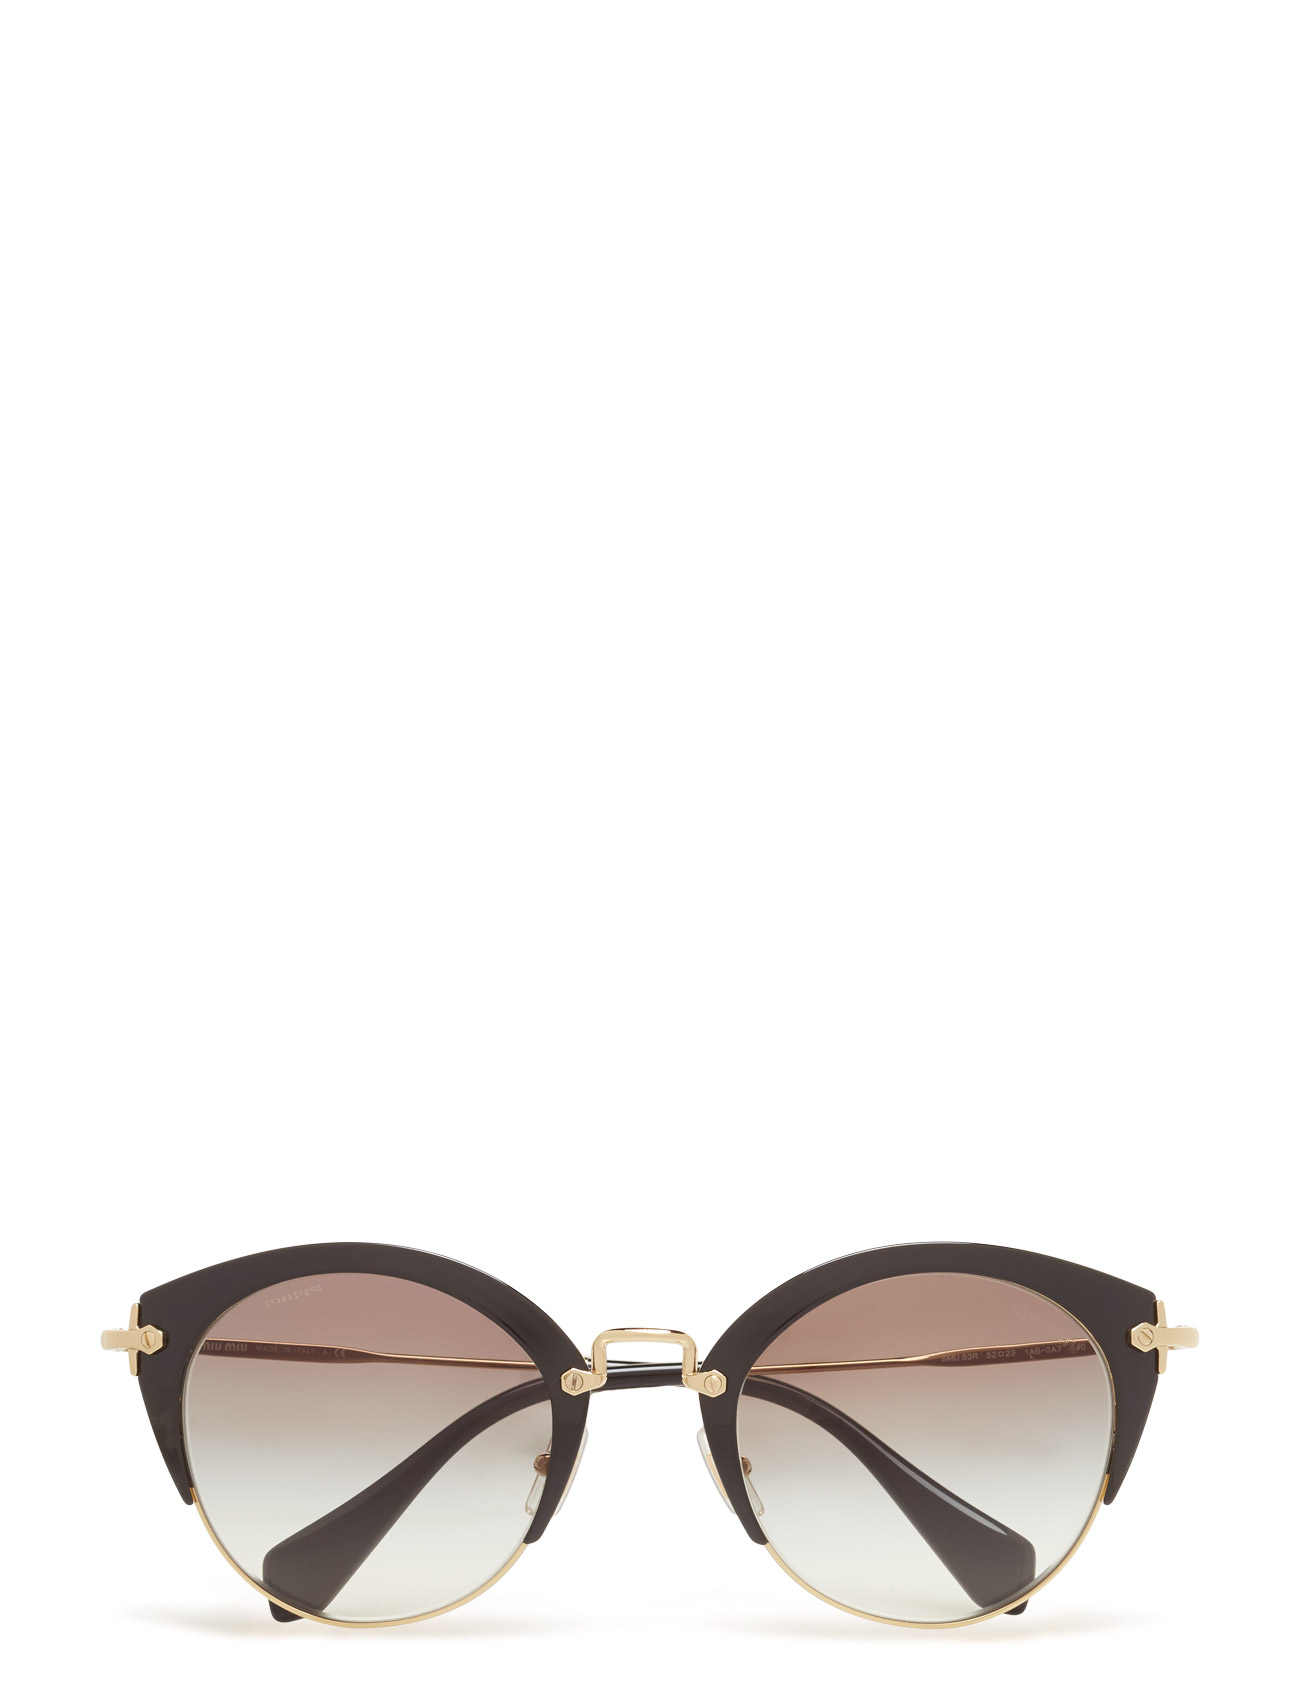 Cat Eye Miu Miu Sunglasses Solbriller til Damer i